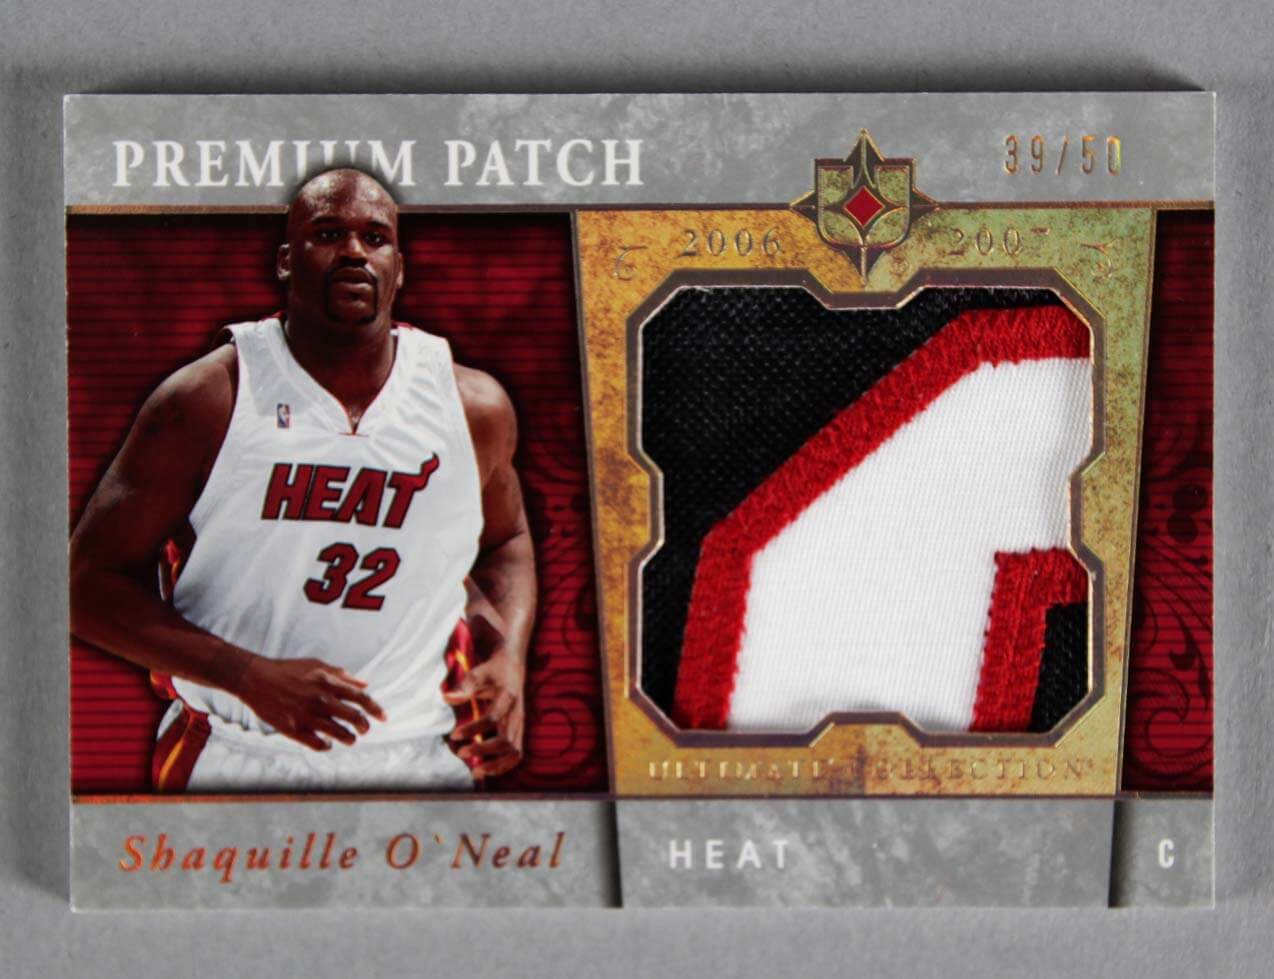 2006-07 UD Ultimate Collection Shaquille O'Neal Game-Used Heat Jersey Card Patch 39/50